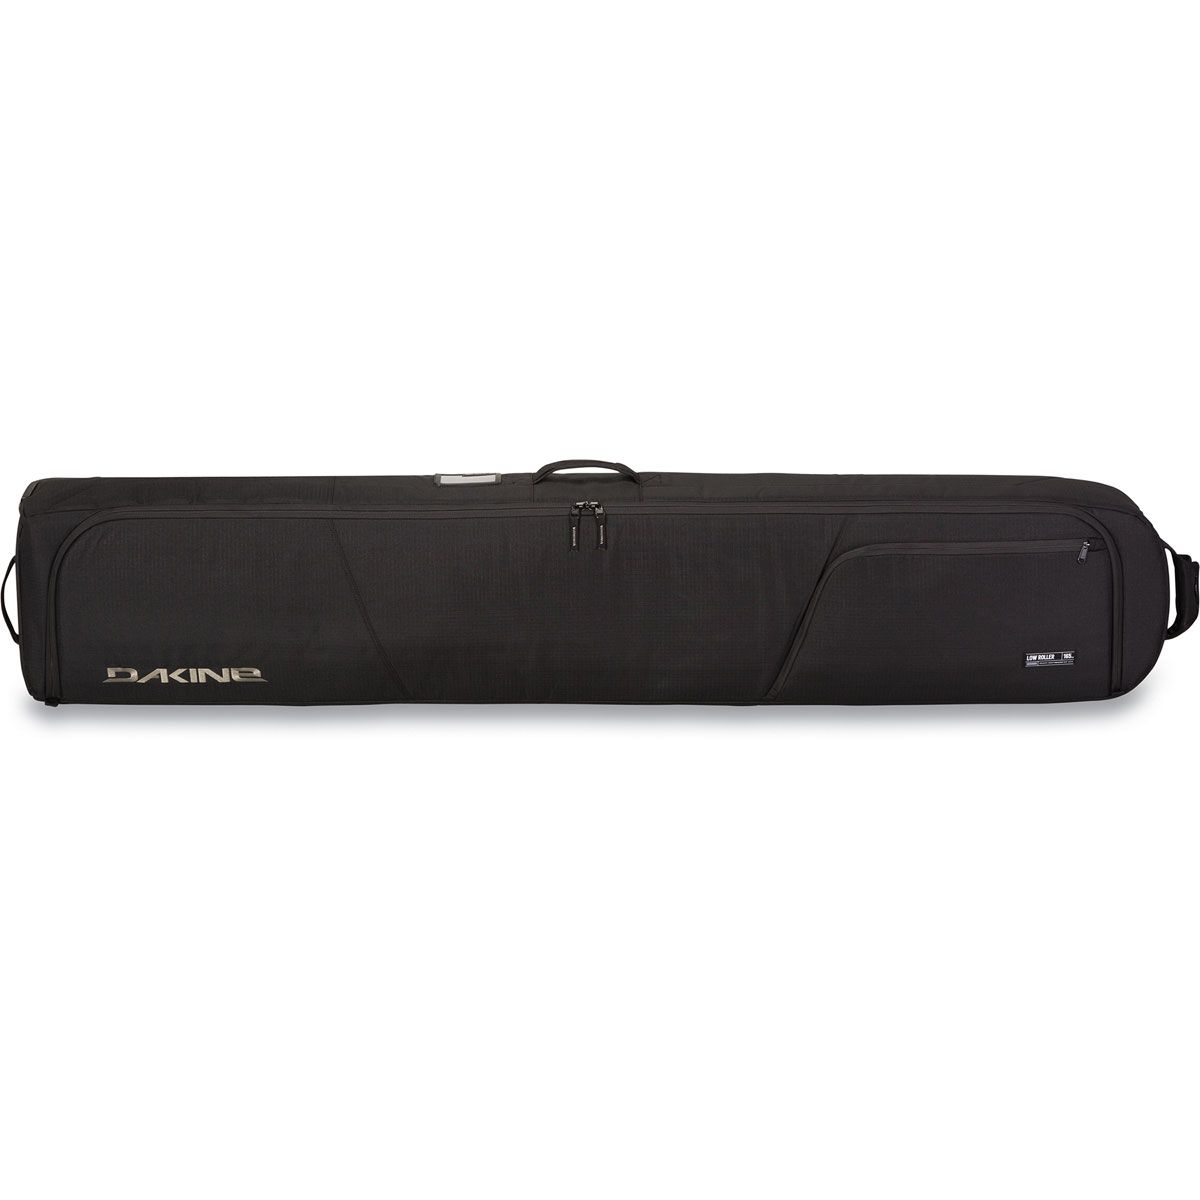 Dakine Low Roller Snowboard Bag 2019-20